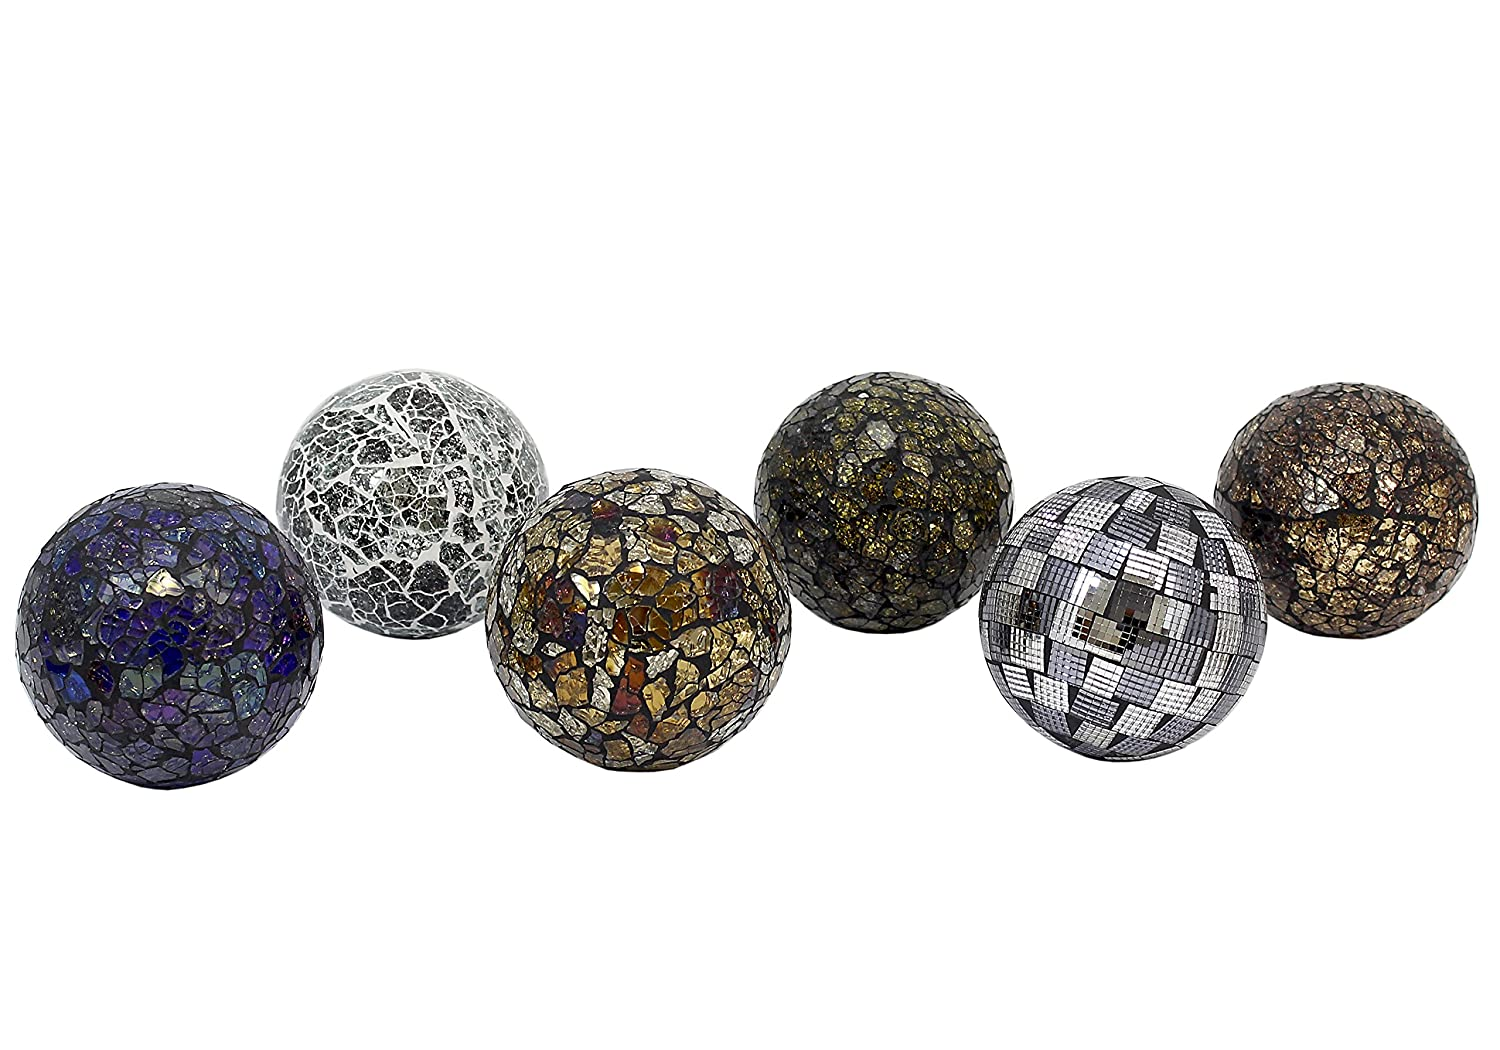 silver red and spot fabulous balls spots be decorative with ball decor black glass mosaic